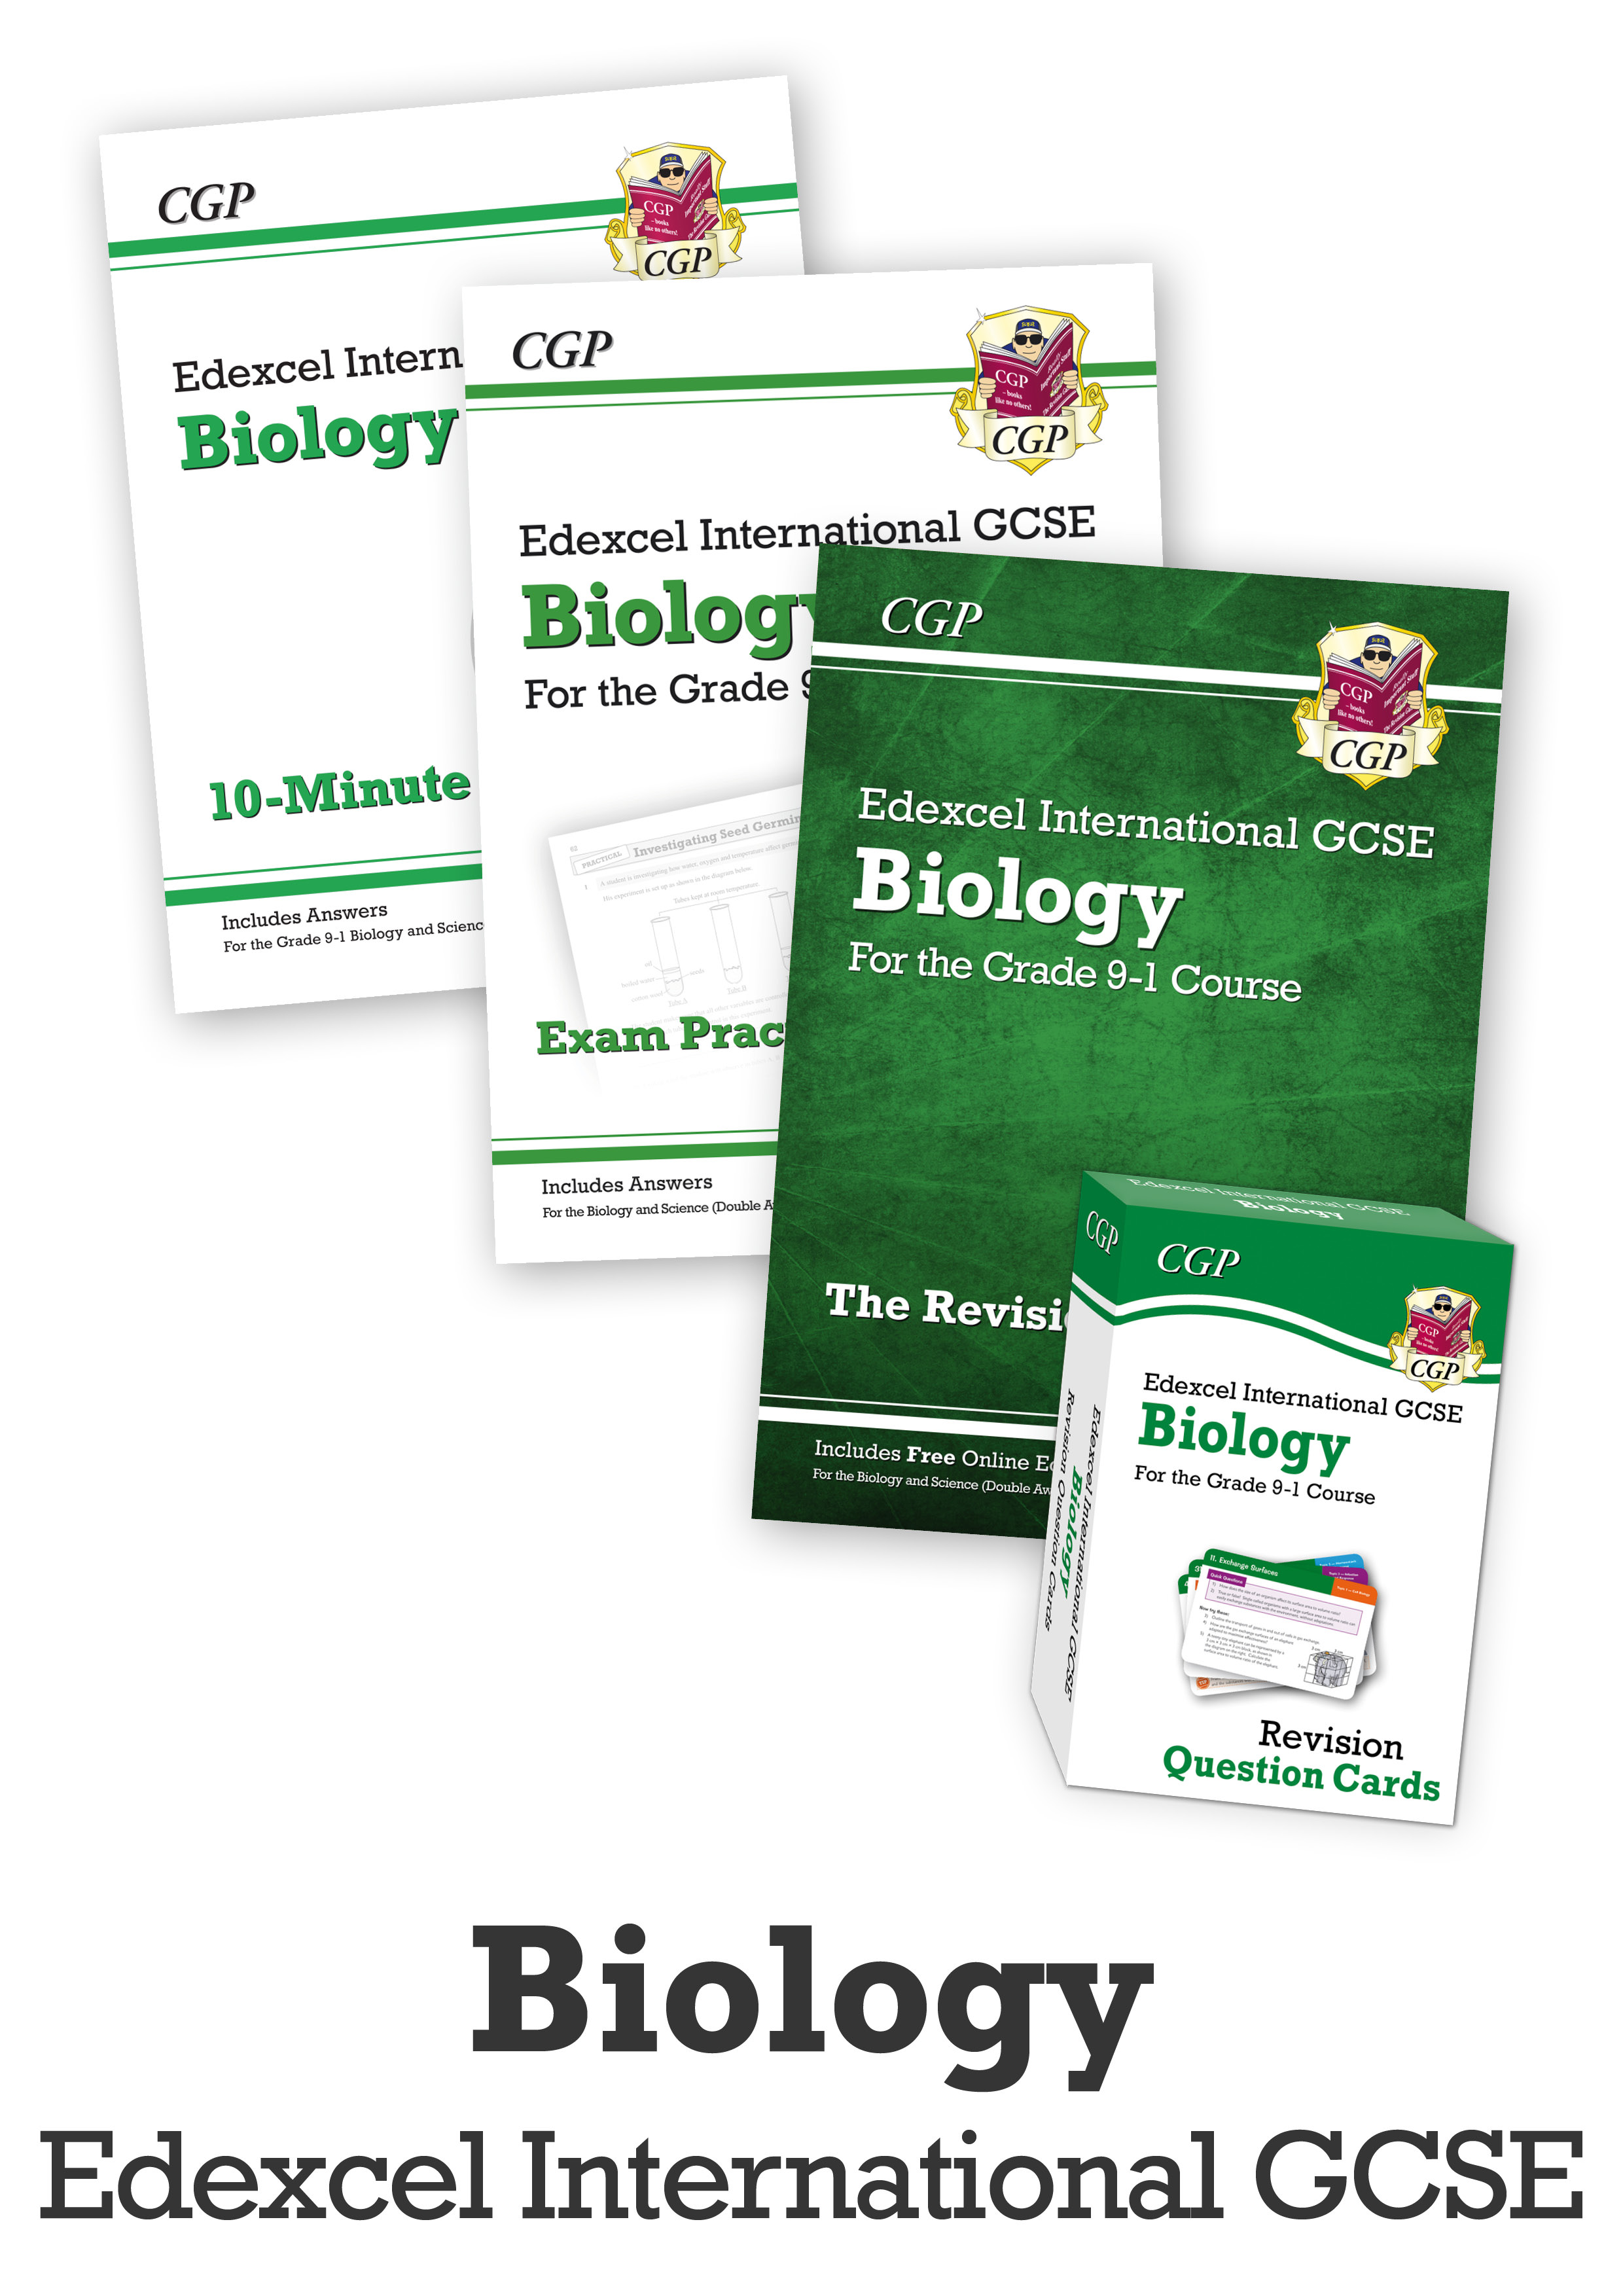 BECUBI41 - GCSE Catch-Up Revision Essentials Bundle: Edexcel International GCSE Biology